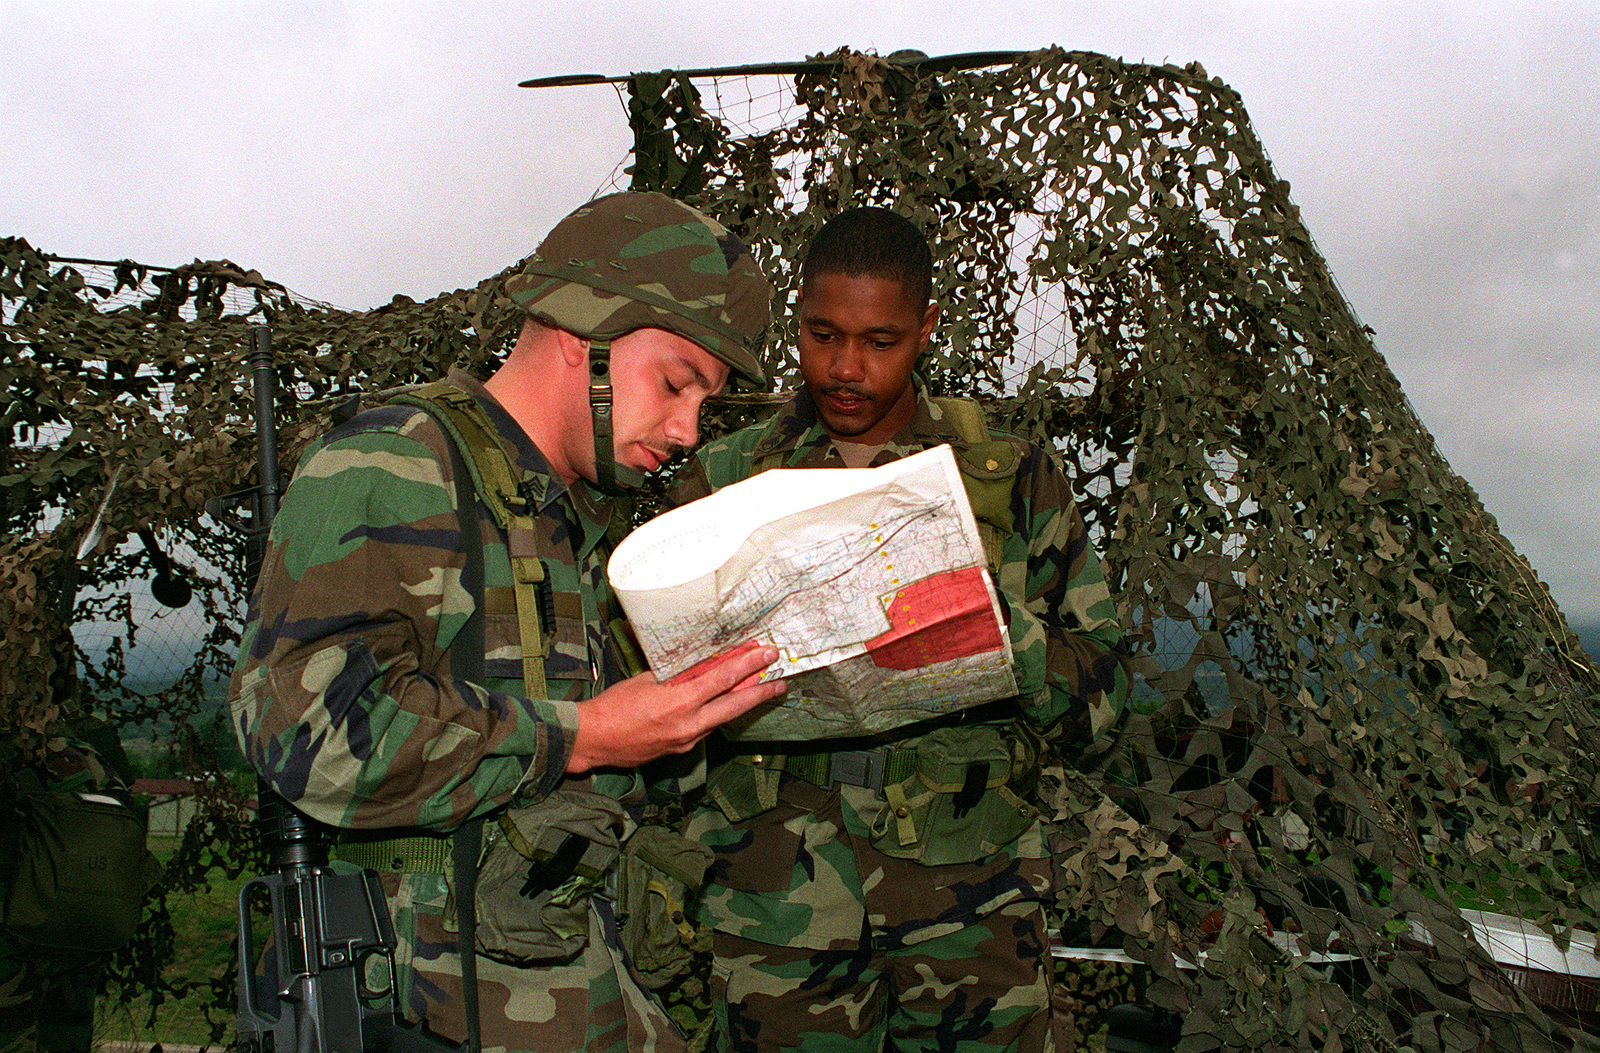 SGT. Kenneth P. Wise, 52nd Engineers, is given a standard 1:50,000-Scale Military Map in a field location to determine the six digit grid coordinates for the point on the map with a 100 meter tolerance. The training was done during sergeants time